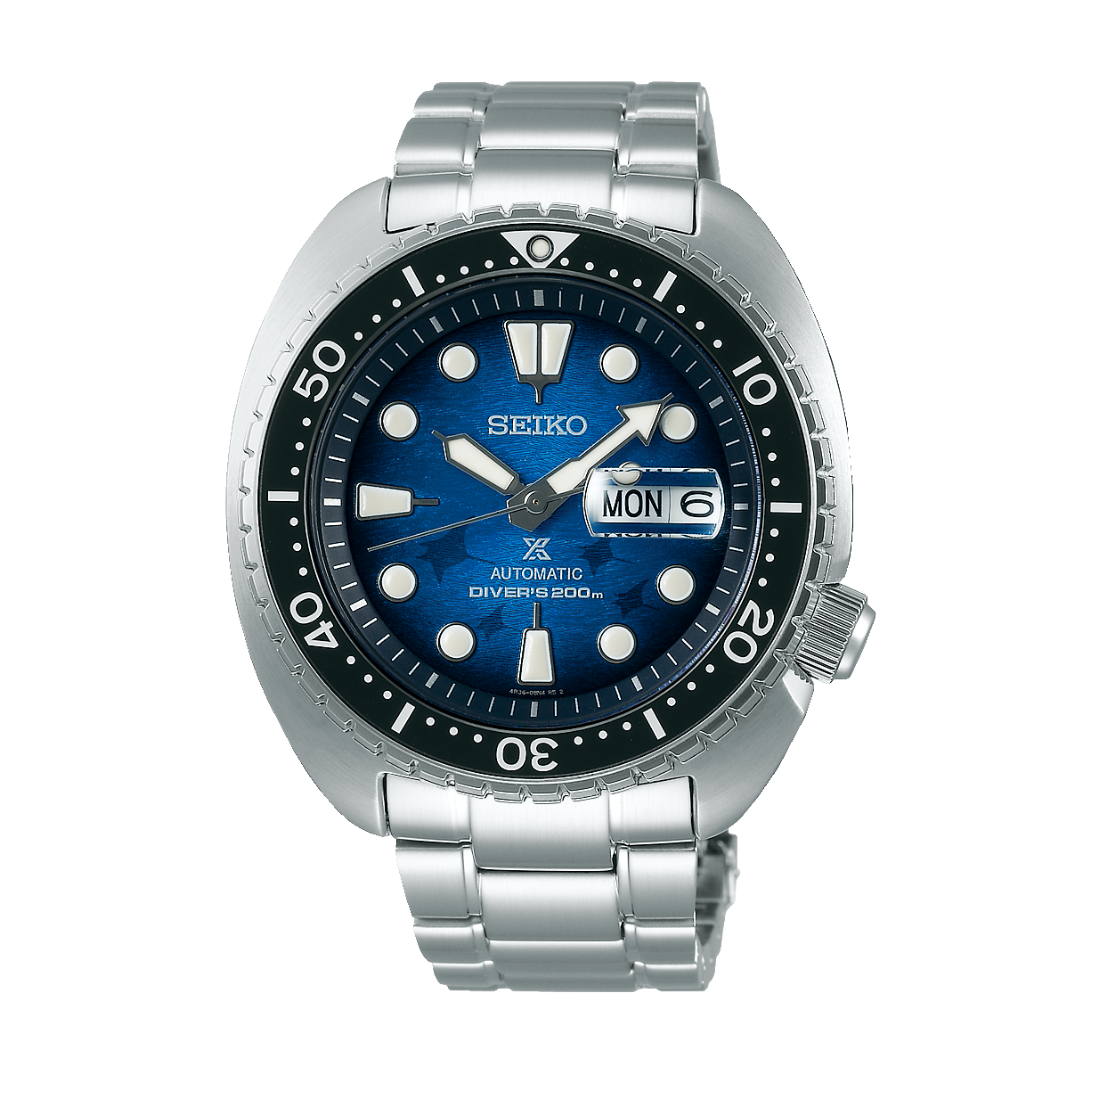 Seiko Prospex Automatic Save The Oceans Divers Watch - Special Edition